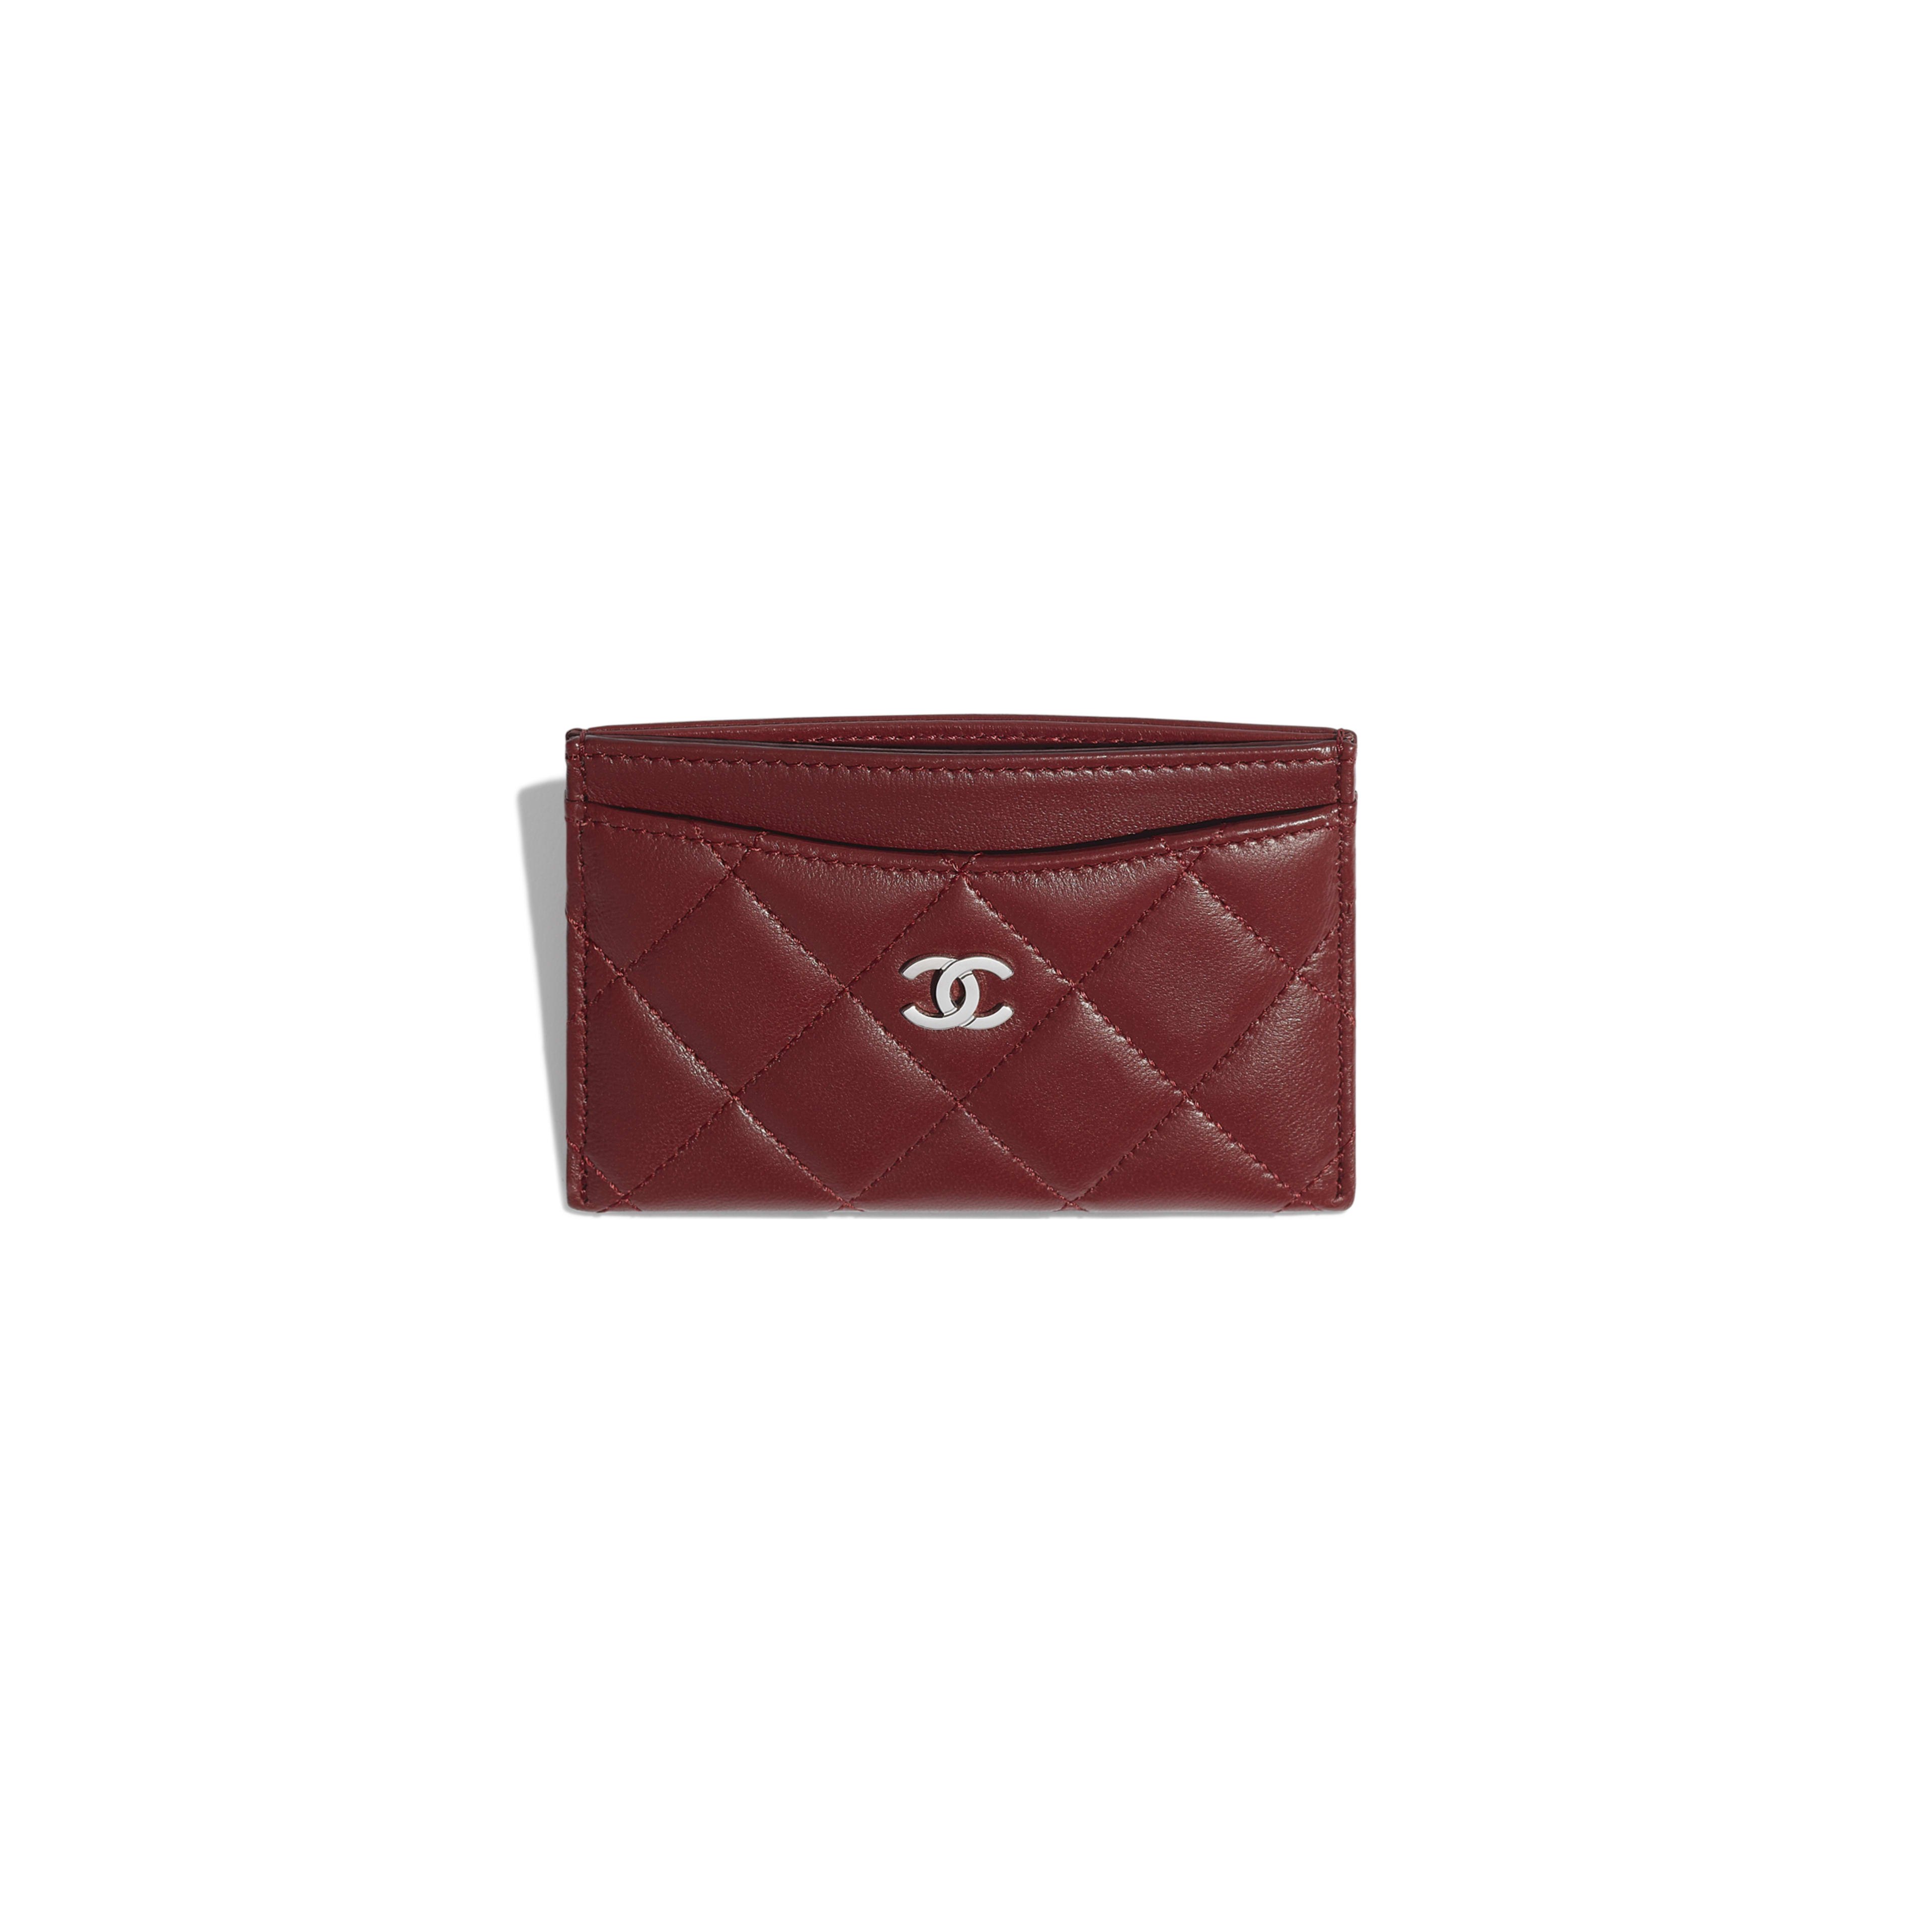 Classic Card Holder - Burgundy - Lambskin - Other view - see full sized version